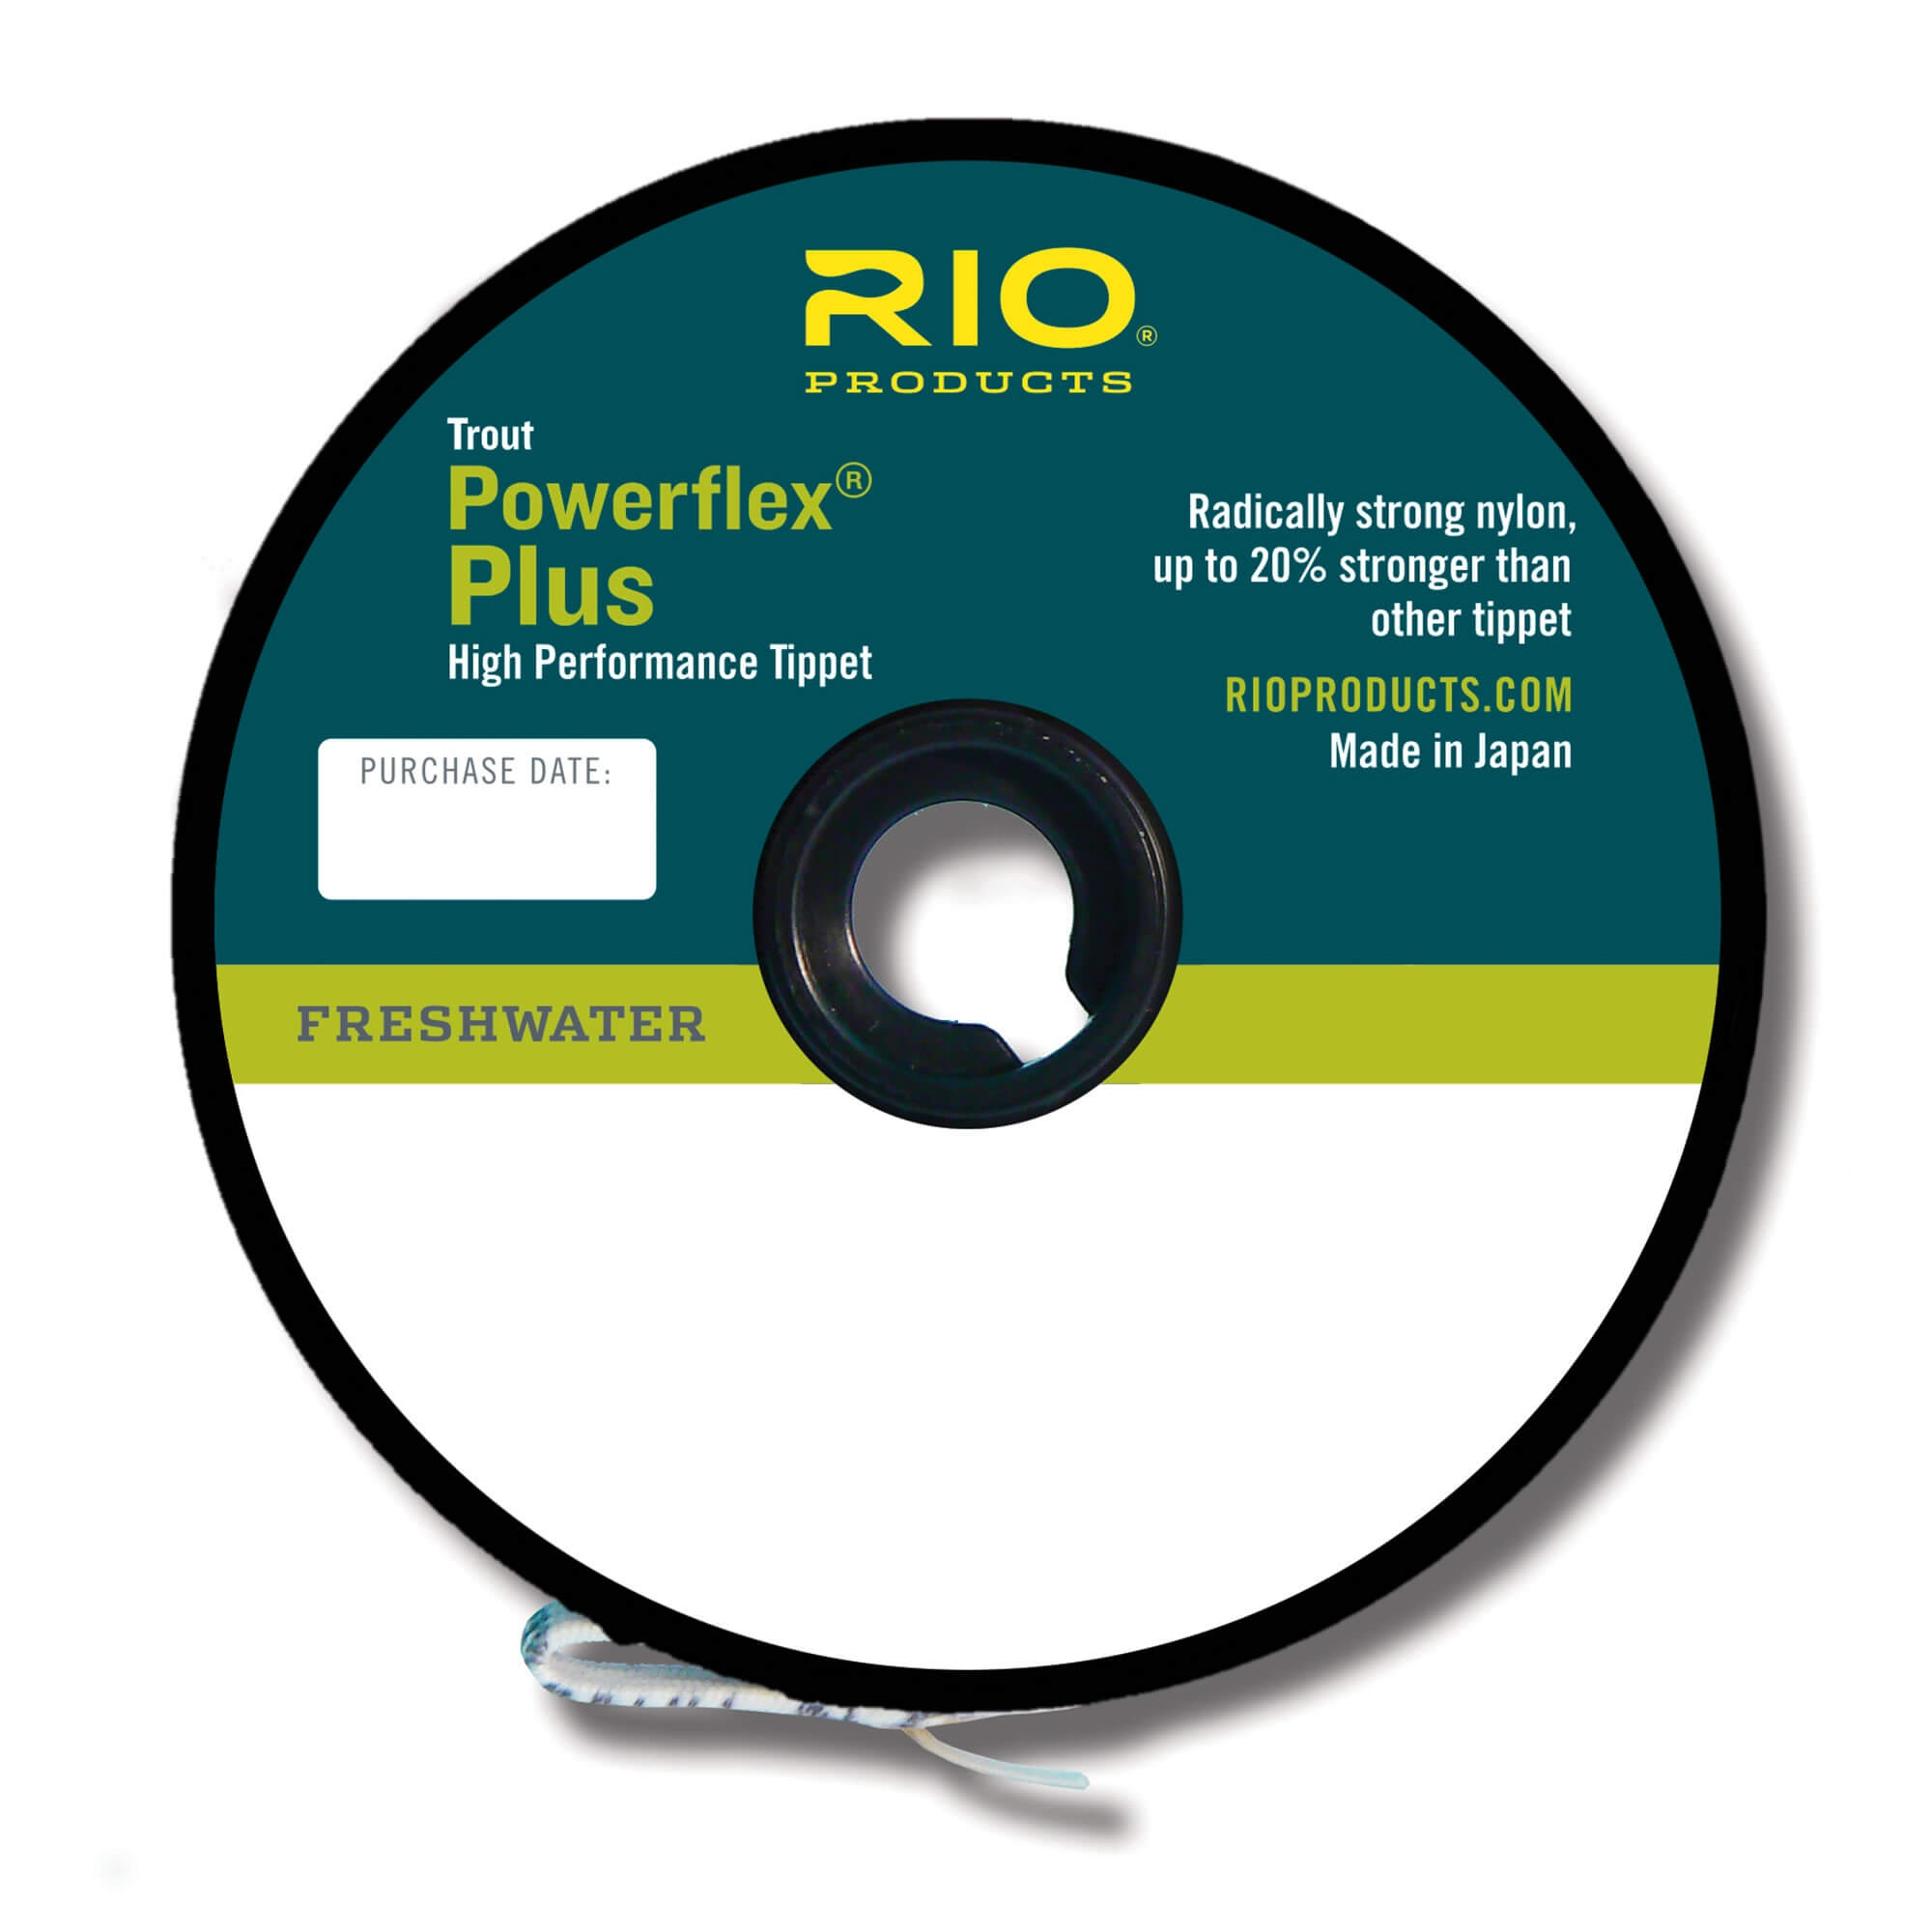 Freshwater Tippet Powerflex Plus